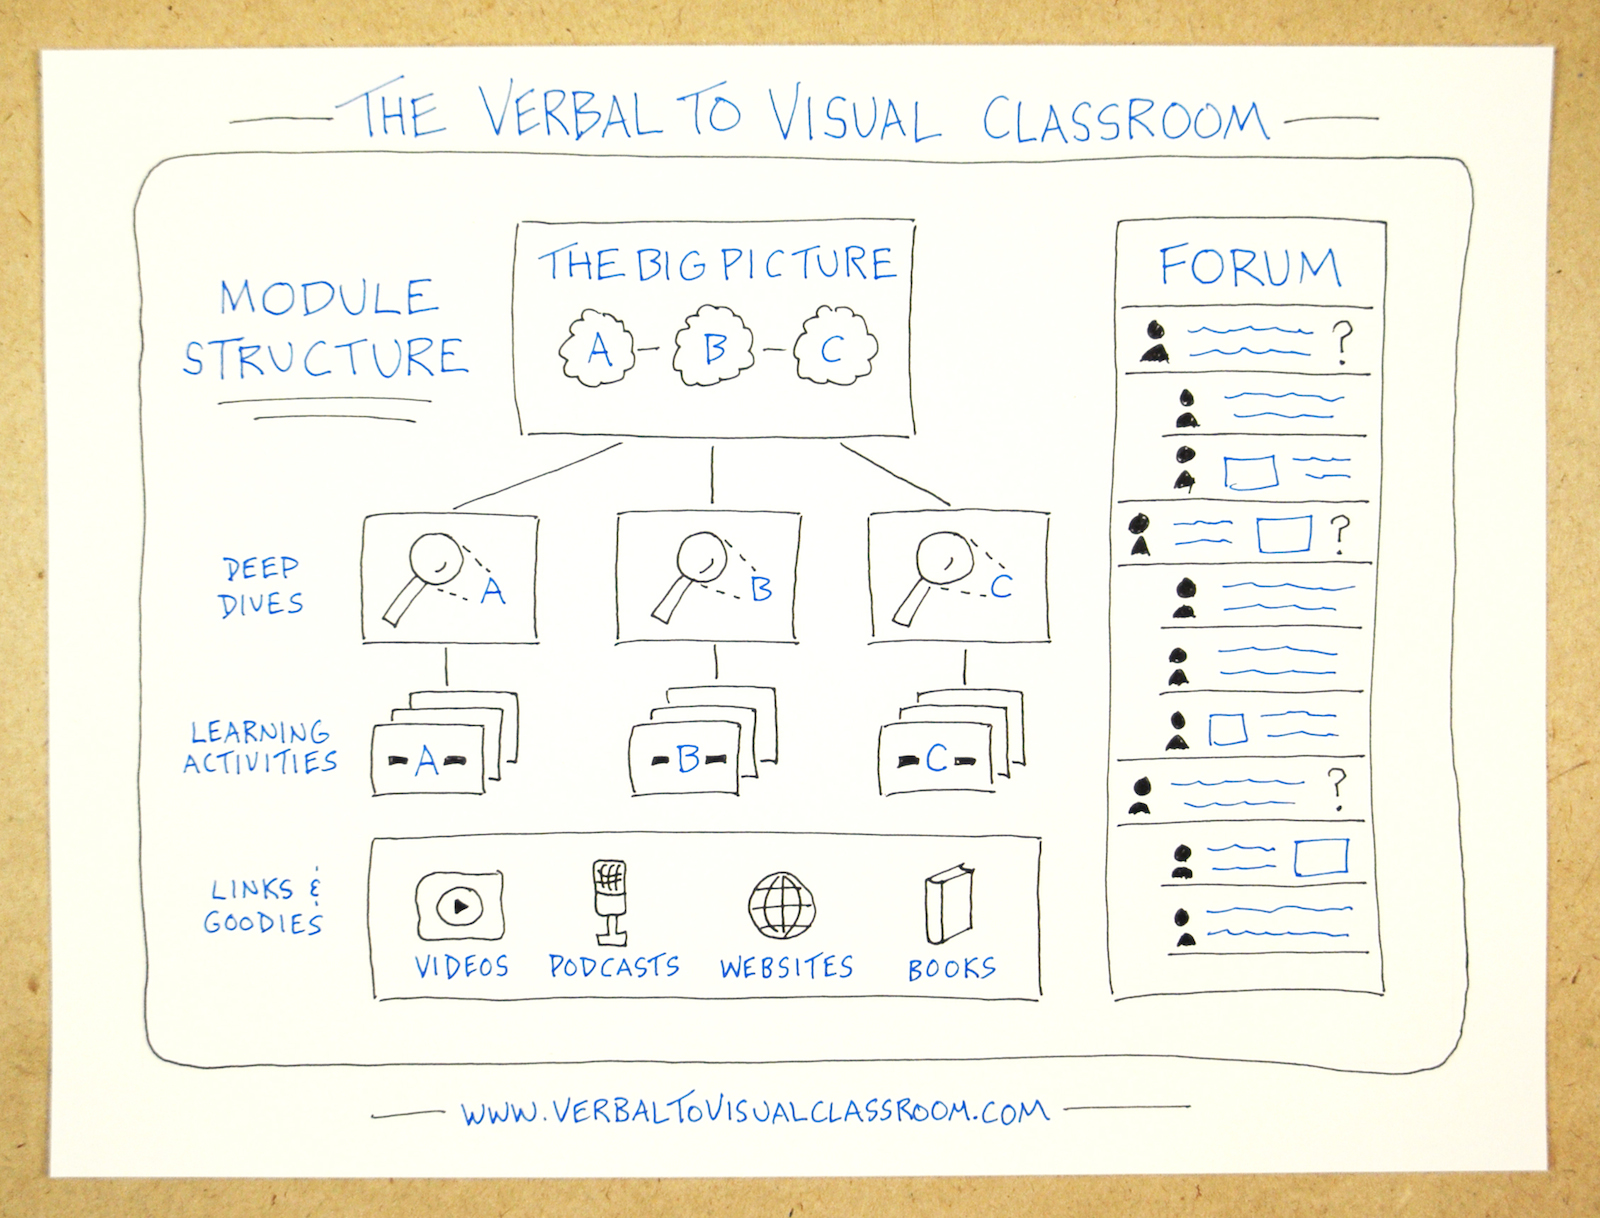 The Verbal To Visual Classroom - Module Structure - Doug Neill - visual note-taking, sketchnoting, doodling